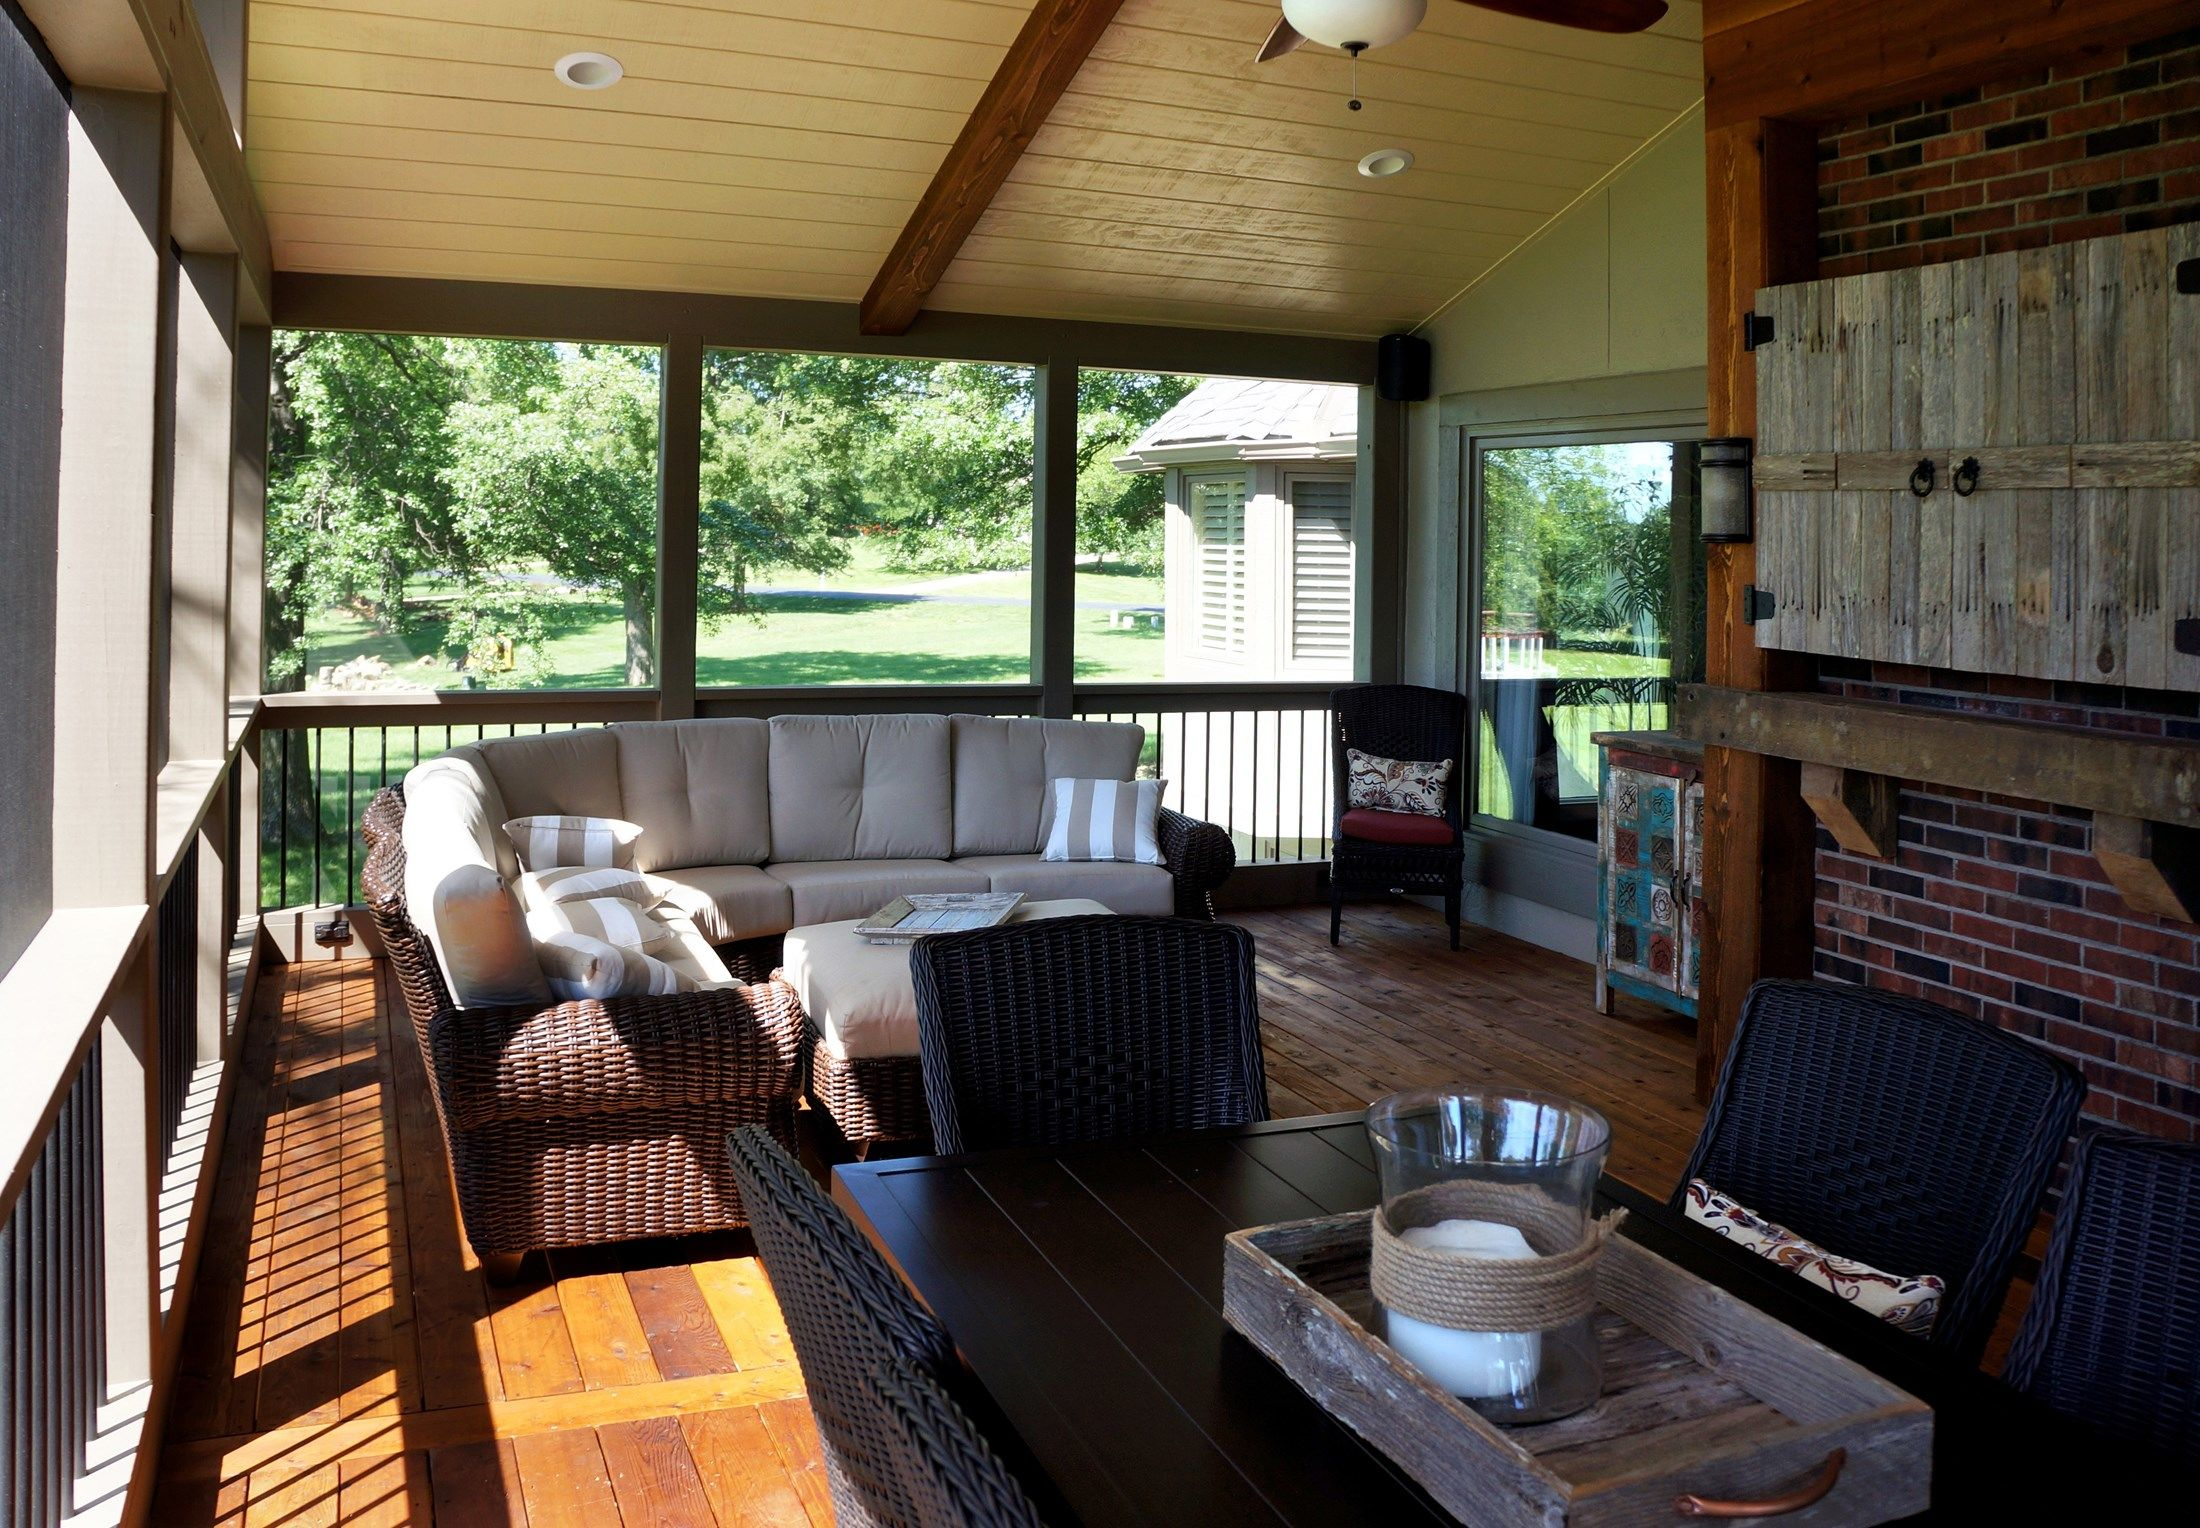 Cedar Screened Porch - Picture 5141